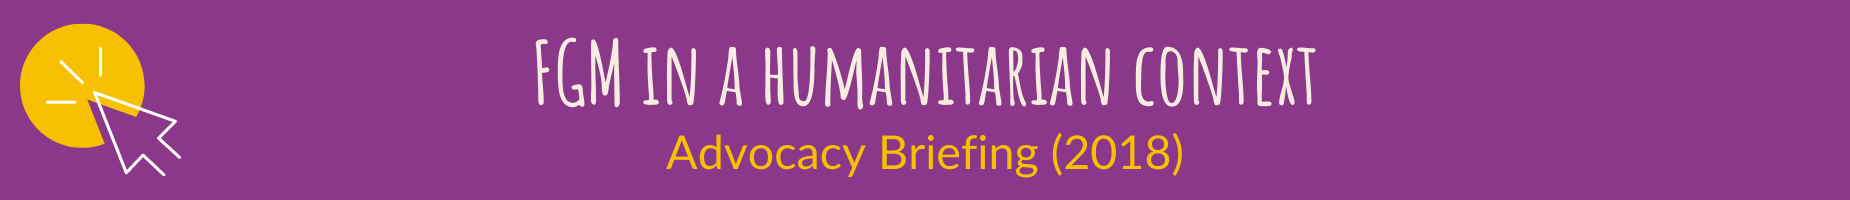 FGM in a humanitarian context - Advocacy Briefing (2018)